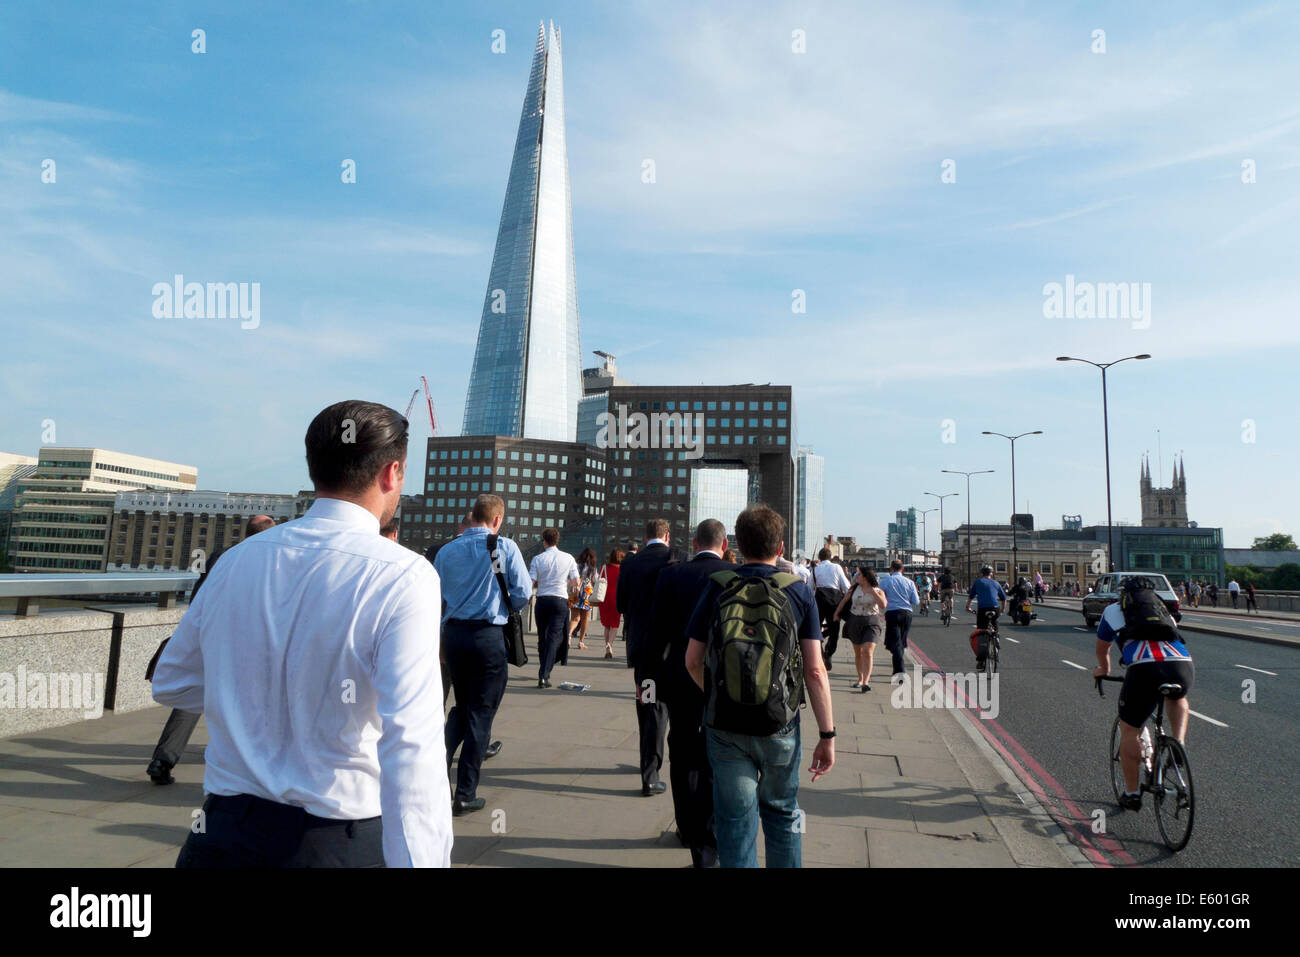 City of London businessman in crowd of office workers walking home over  London Bridge after work with view of Shard - Stock Image